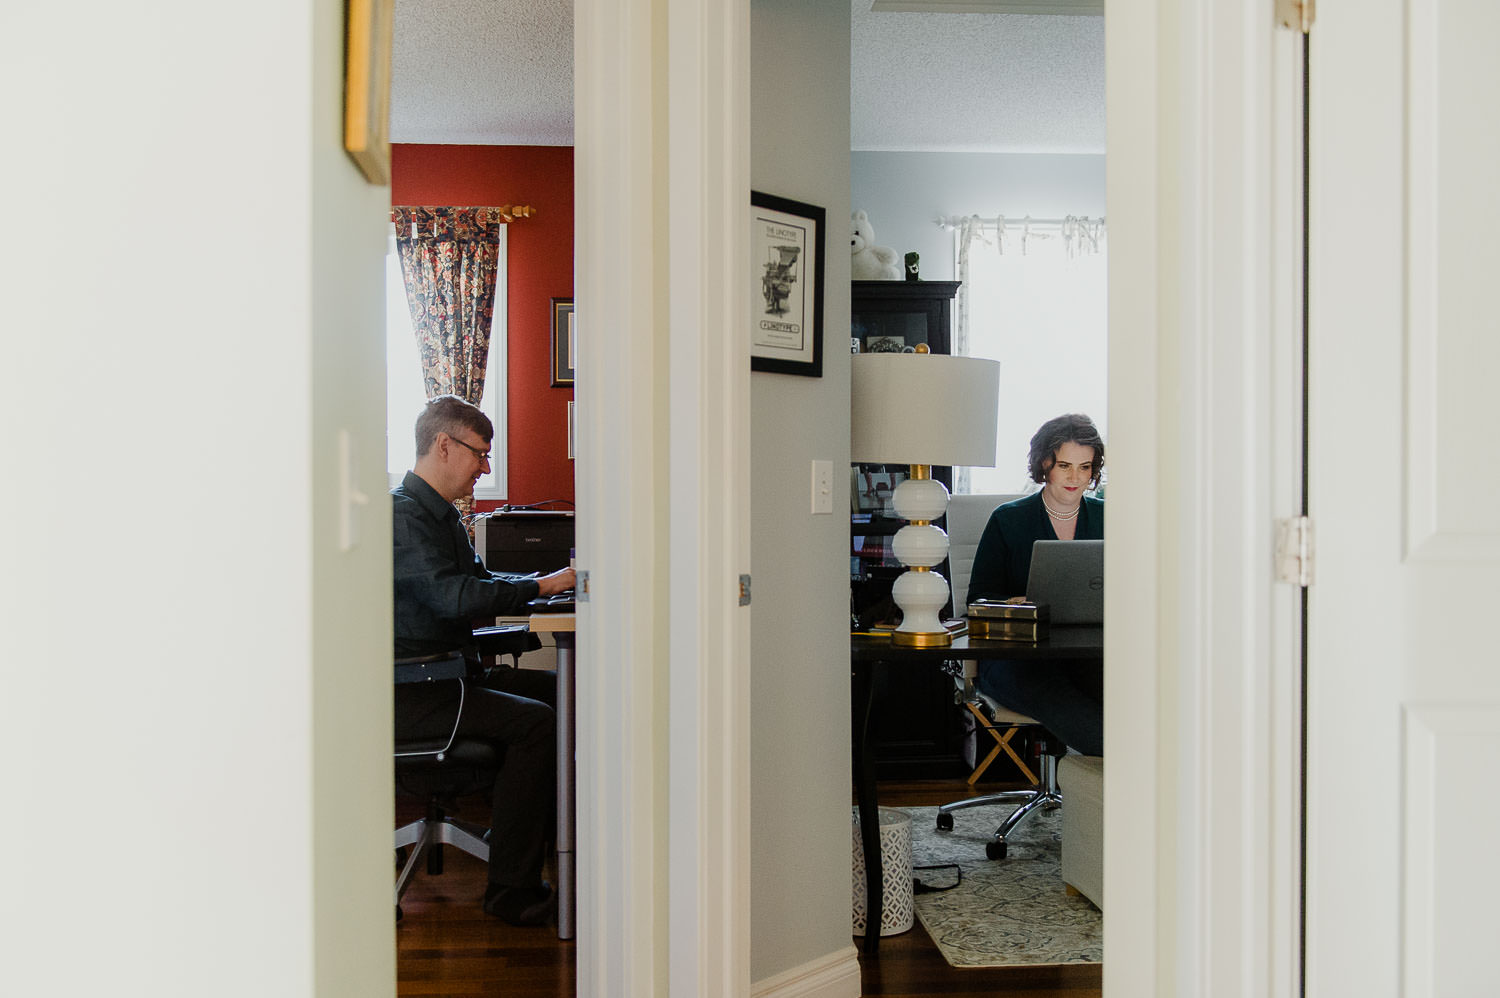 couple working together in home